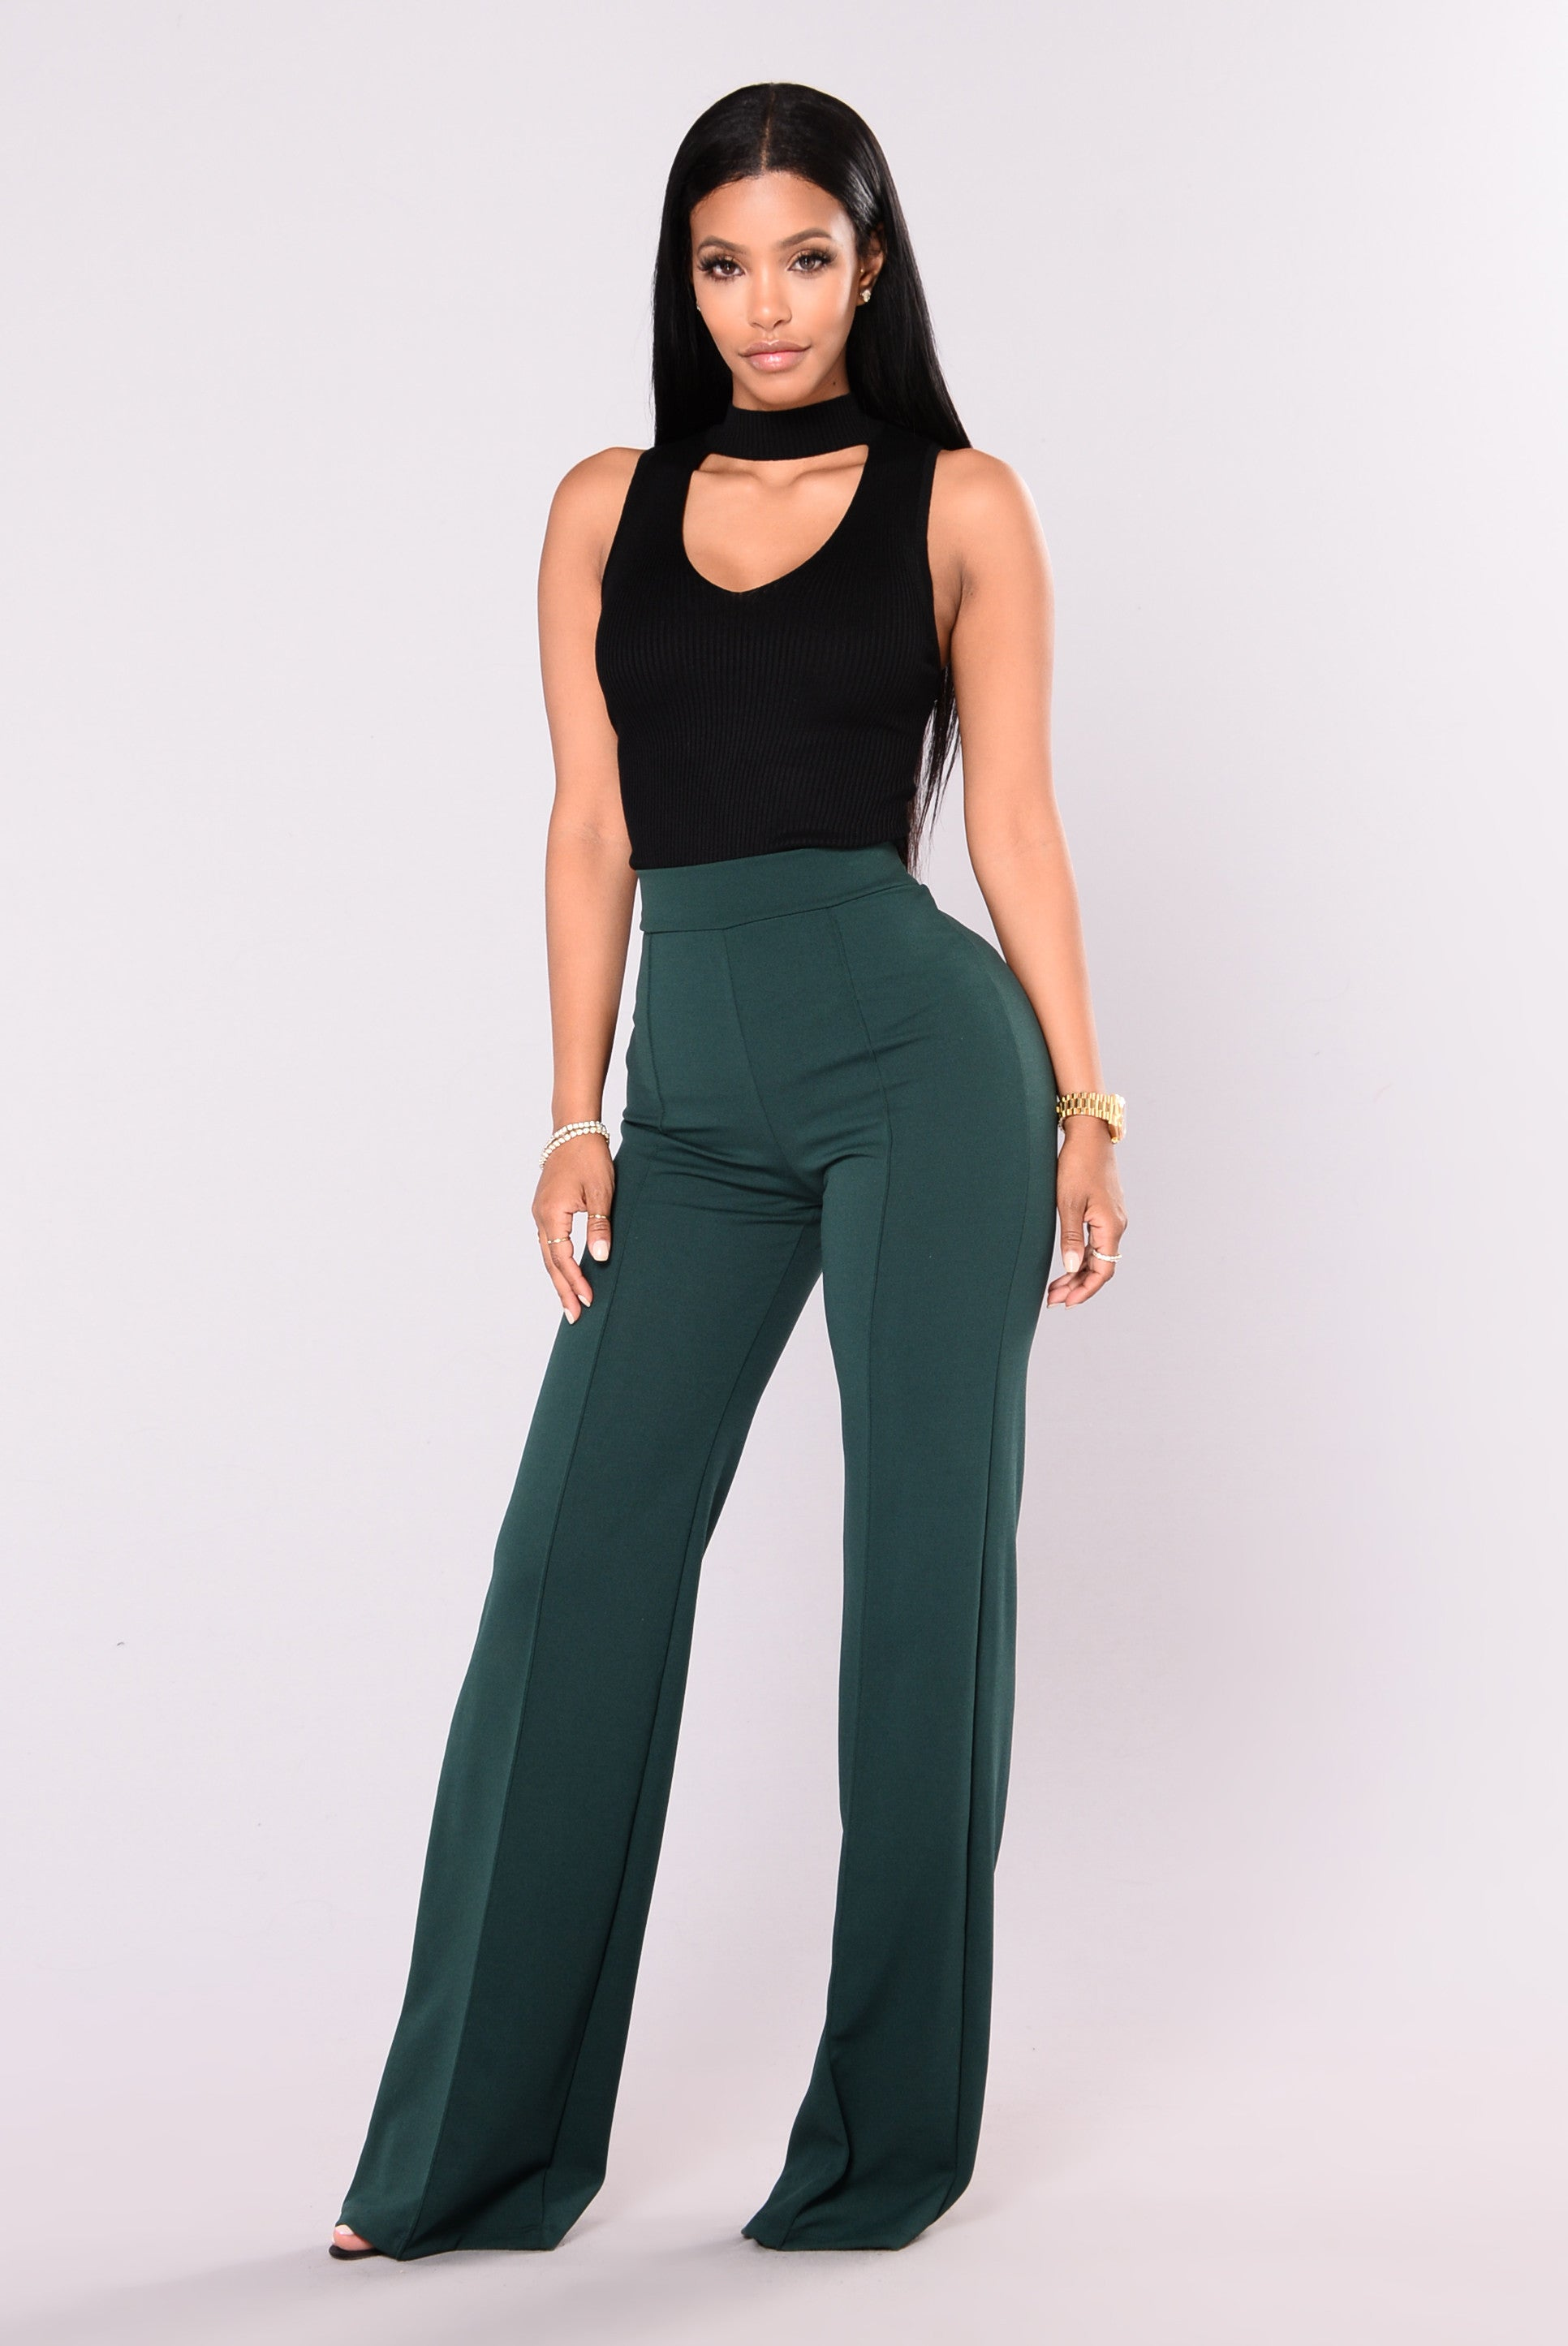 Related: high waisted jeans high waisted trousers high waisted wide leg pants high waisted leggings high waisted skirt high waisted pants vintage palazzo pants jumpsuit high waist pants crop top Include description.